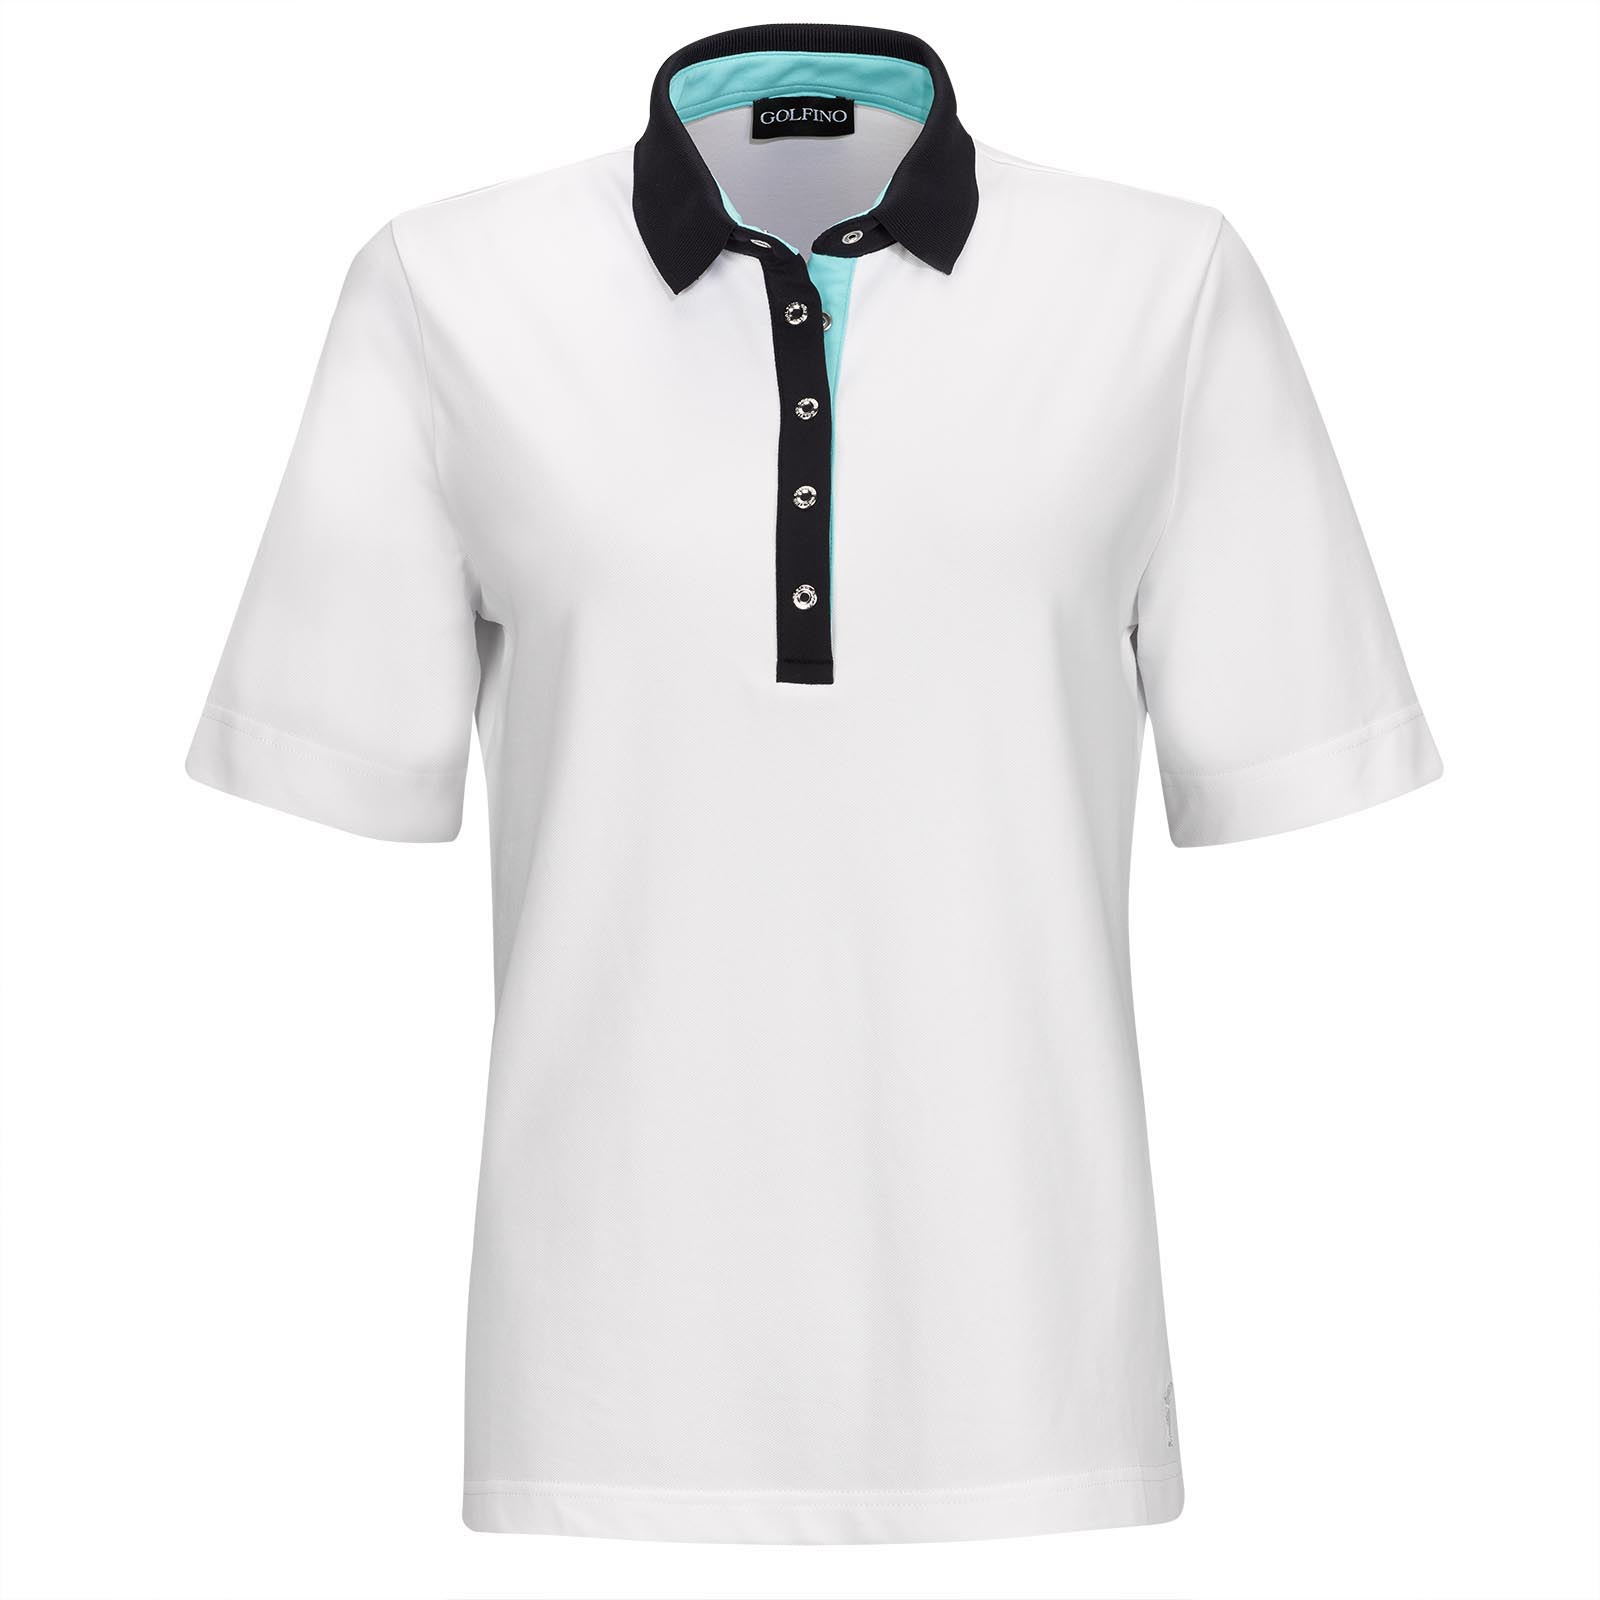 Kurzarm Damen Golfpolo mit Sun Protection und Stretch-Funktion